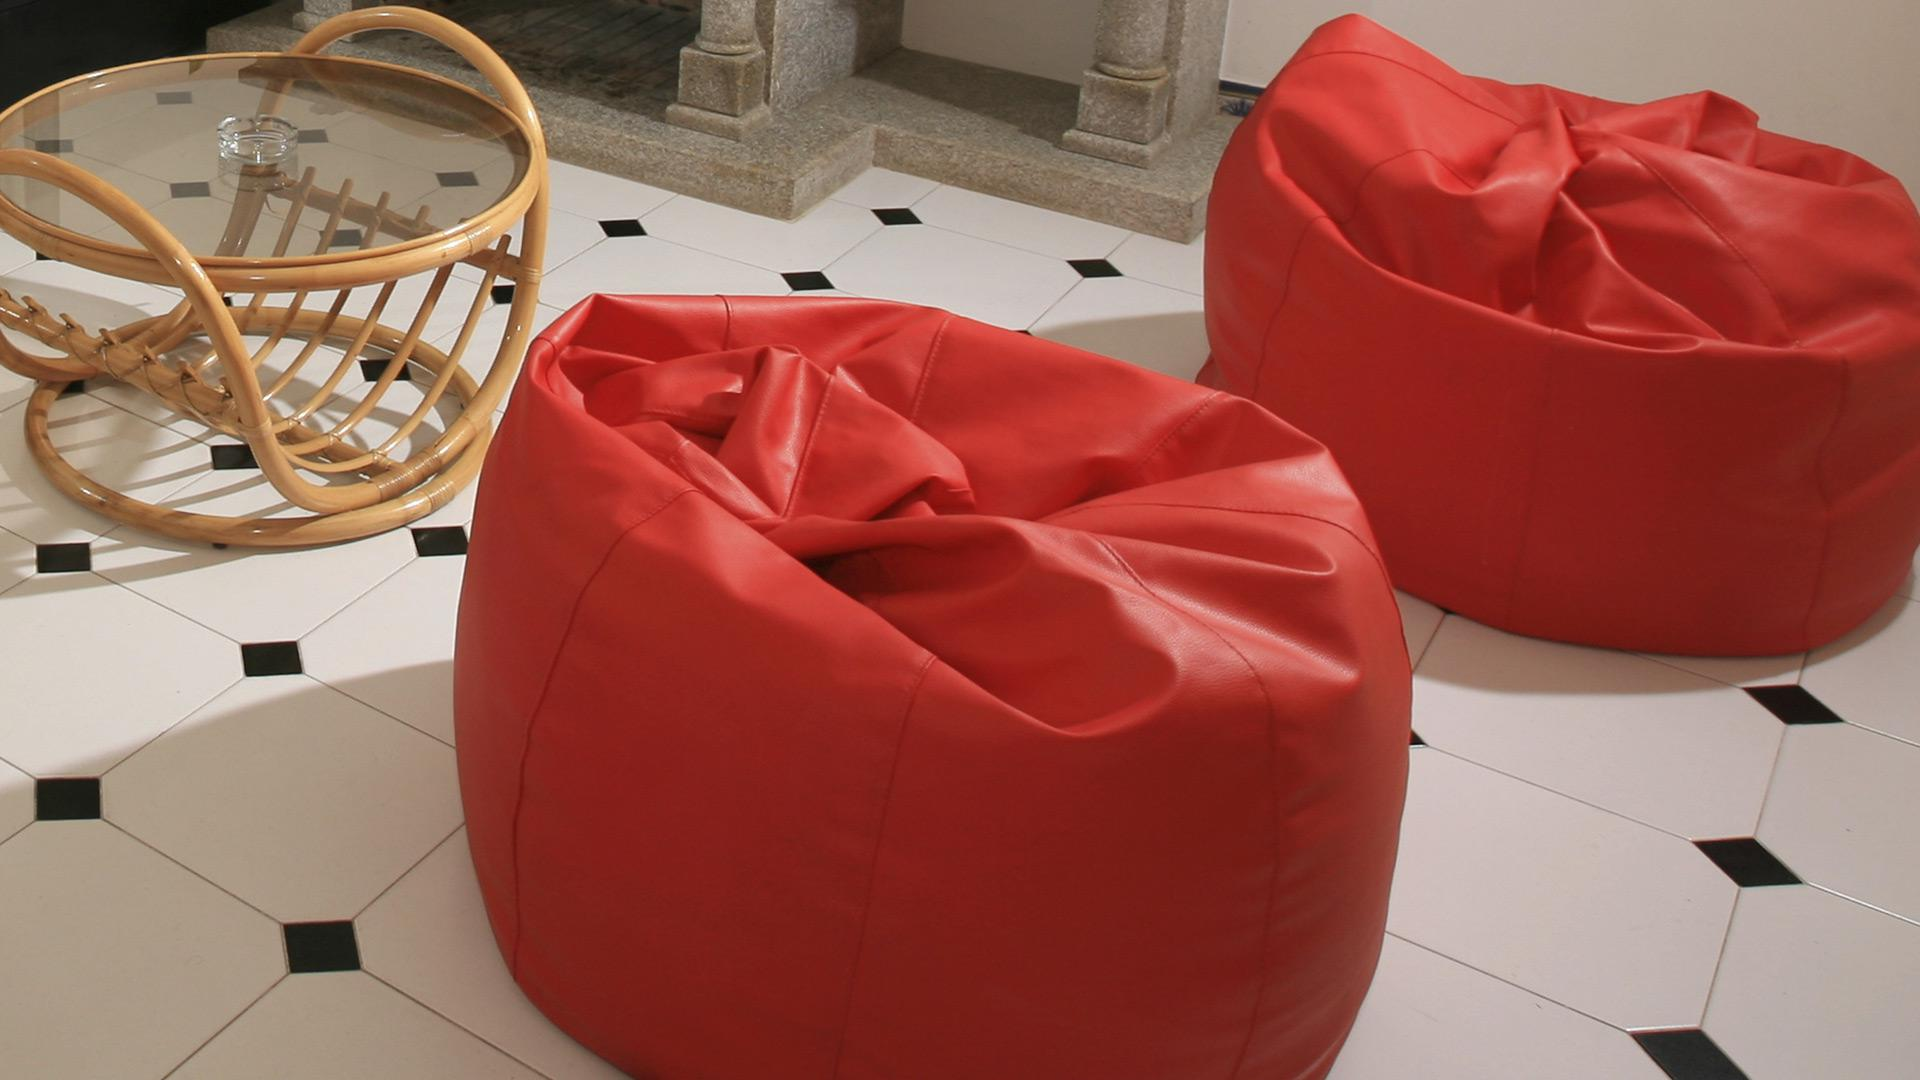 Awe Inspiring Huge Recall Of Bean Bag Chairs Due To Suffocation And Alphanode Cool Chair Designs And Ideas Alphanodeonline